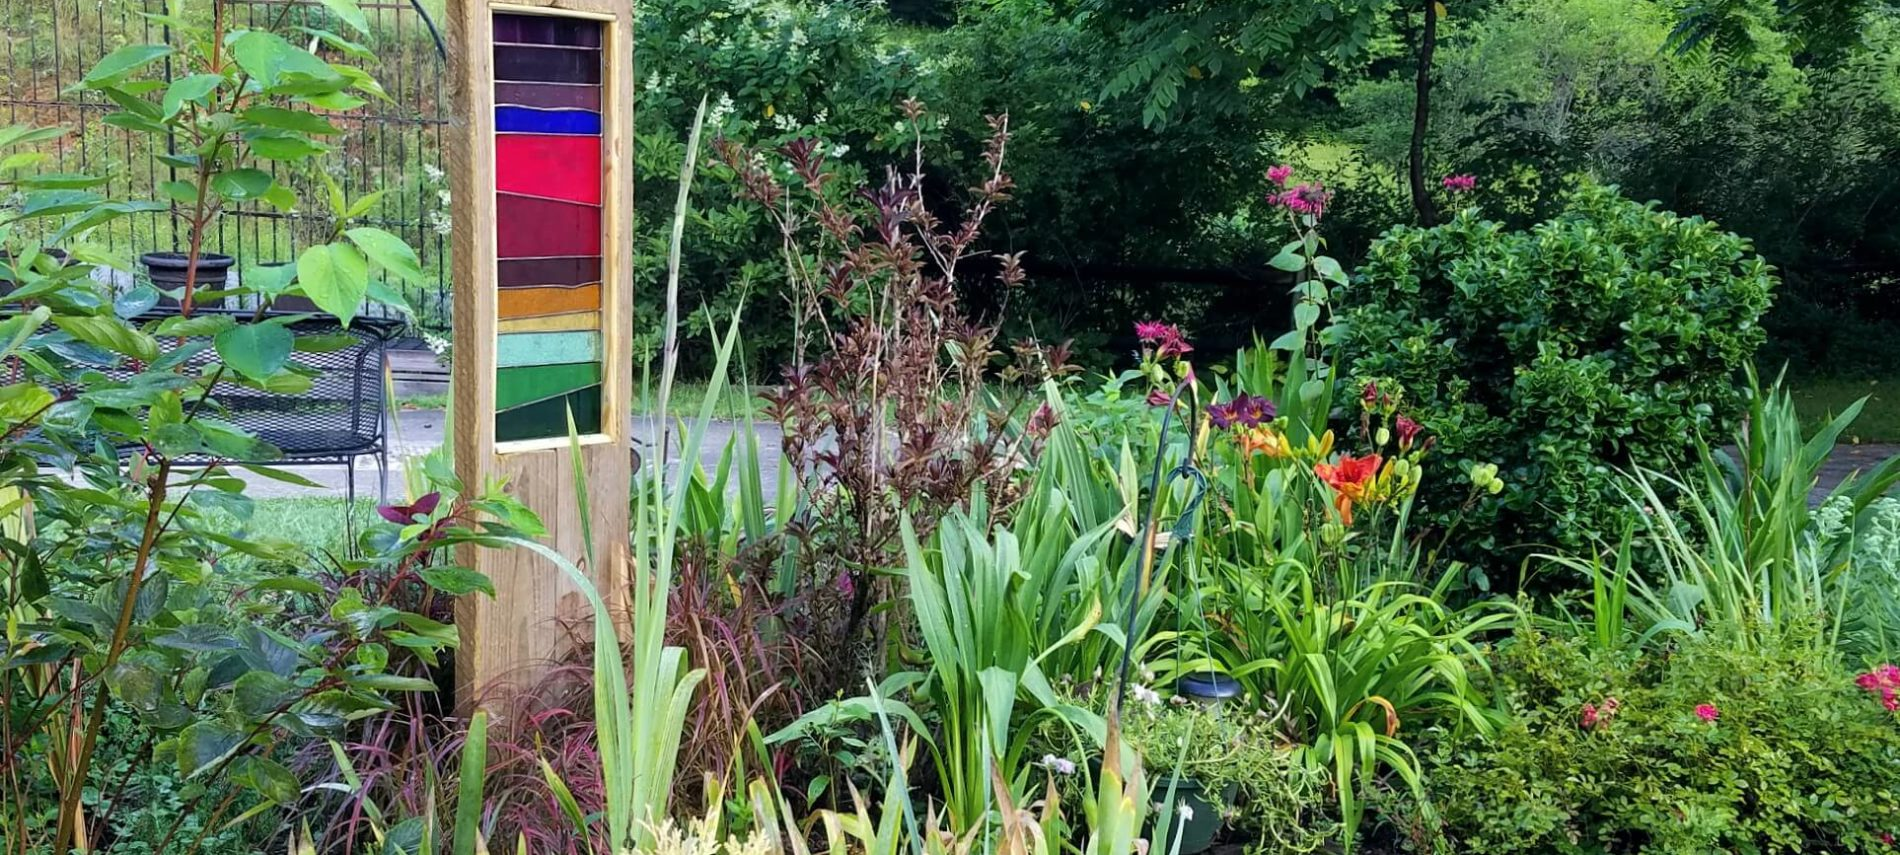 Multi-colored stained glass framed in wood in a garden